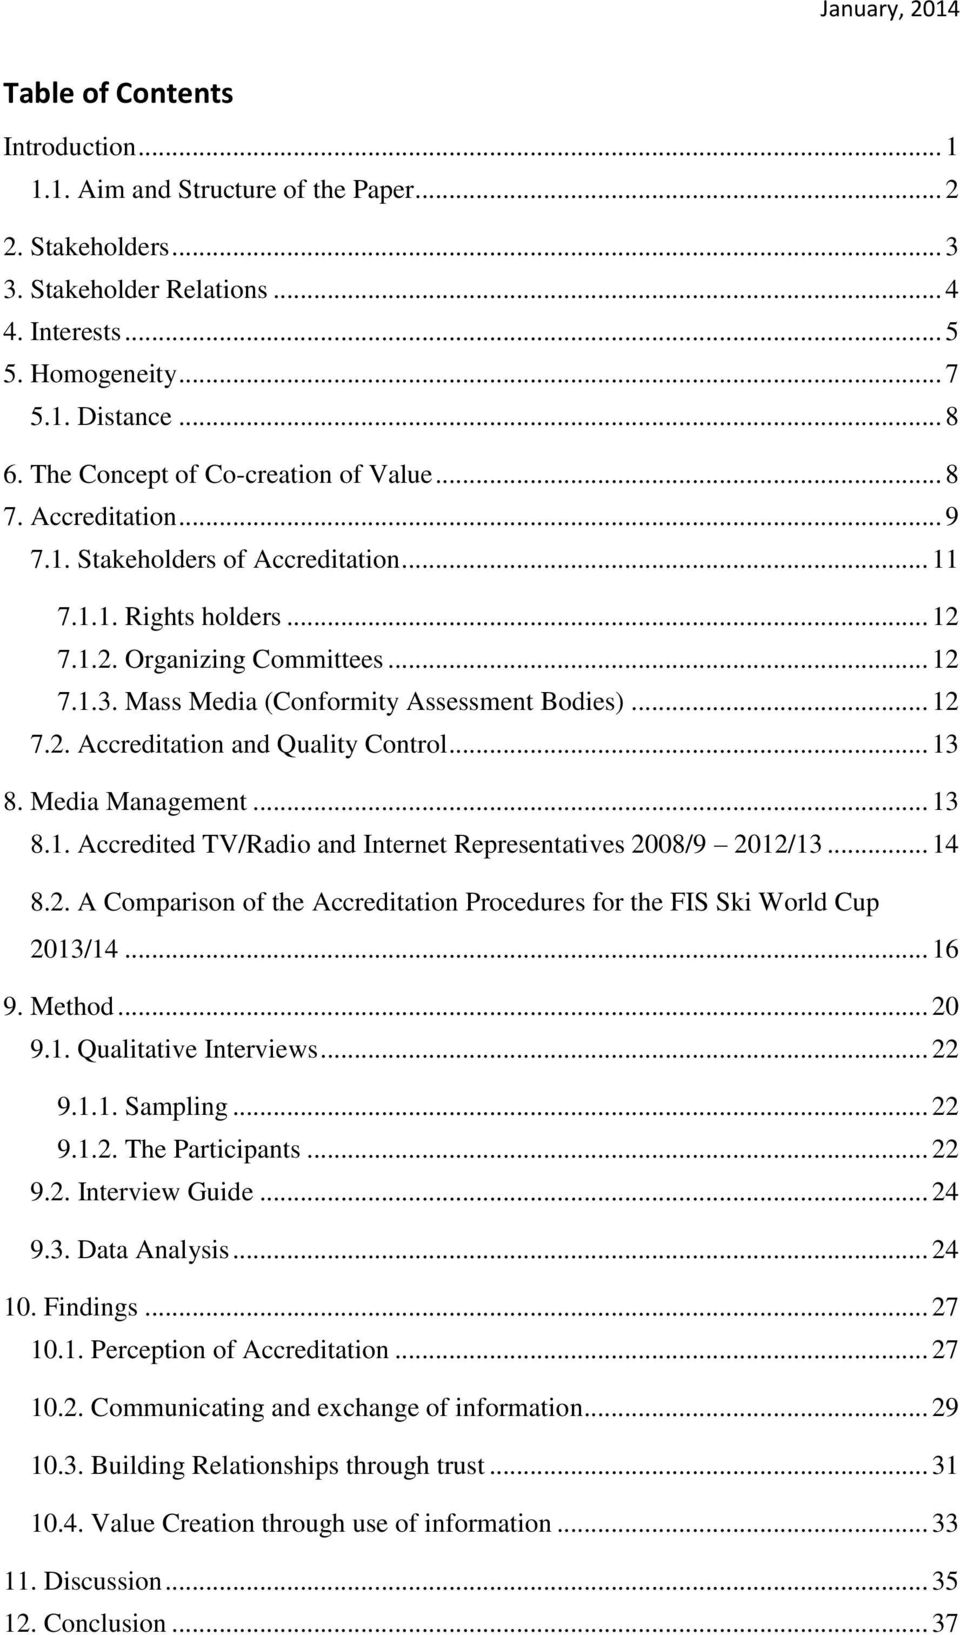 Mass Media (Conformity Assessment Bodies)... 12 7.2. Accreditation and Quality Control... 13 8. Media Management... 13 8.1. Accredited TV/Radio and Internet Representatives 2008/9 2012/13... 14 8.2. A Comparison of the Accreditation Procedures for the FIS Ski World Cup 2013/14.